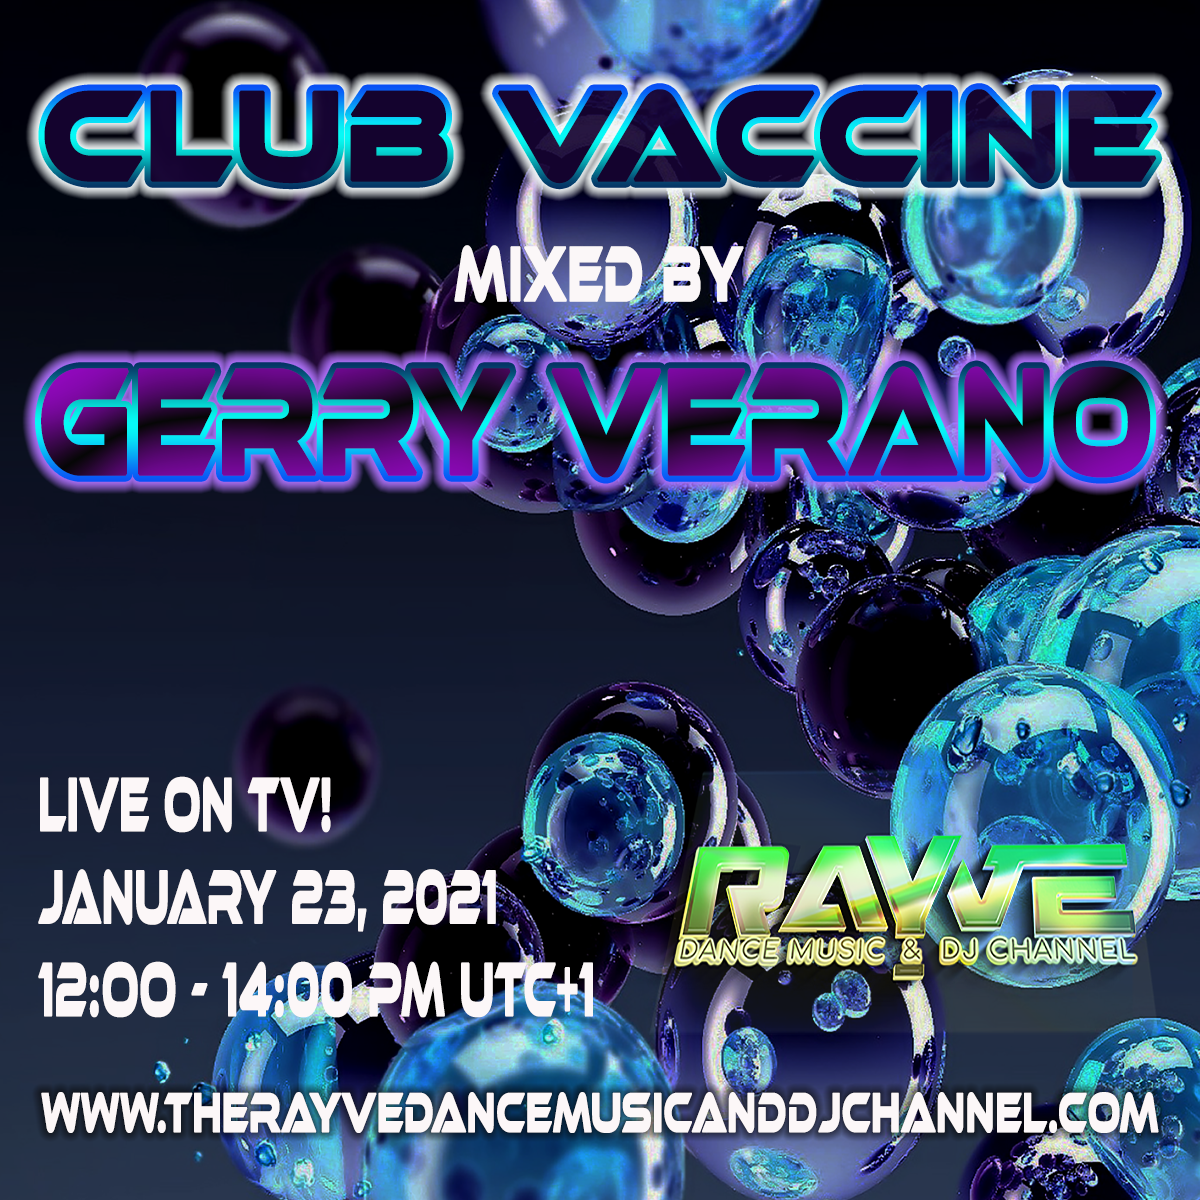 Club Vaccine mixed by Gerry Verano